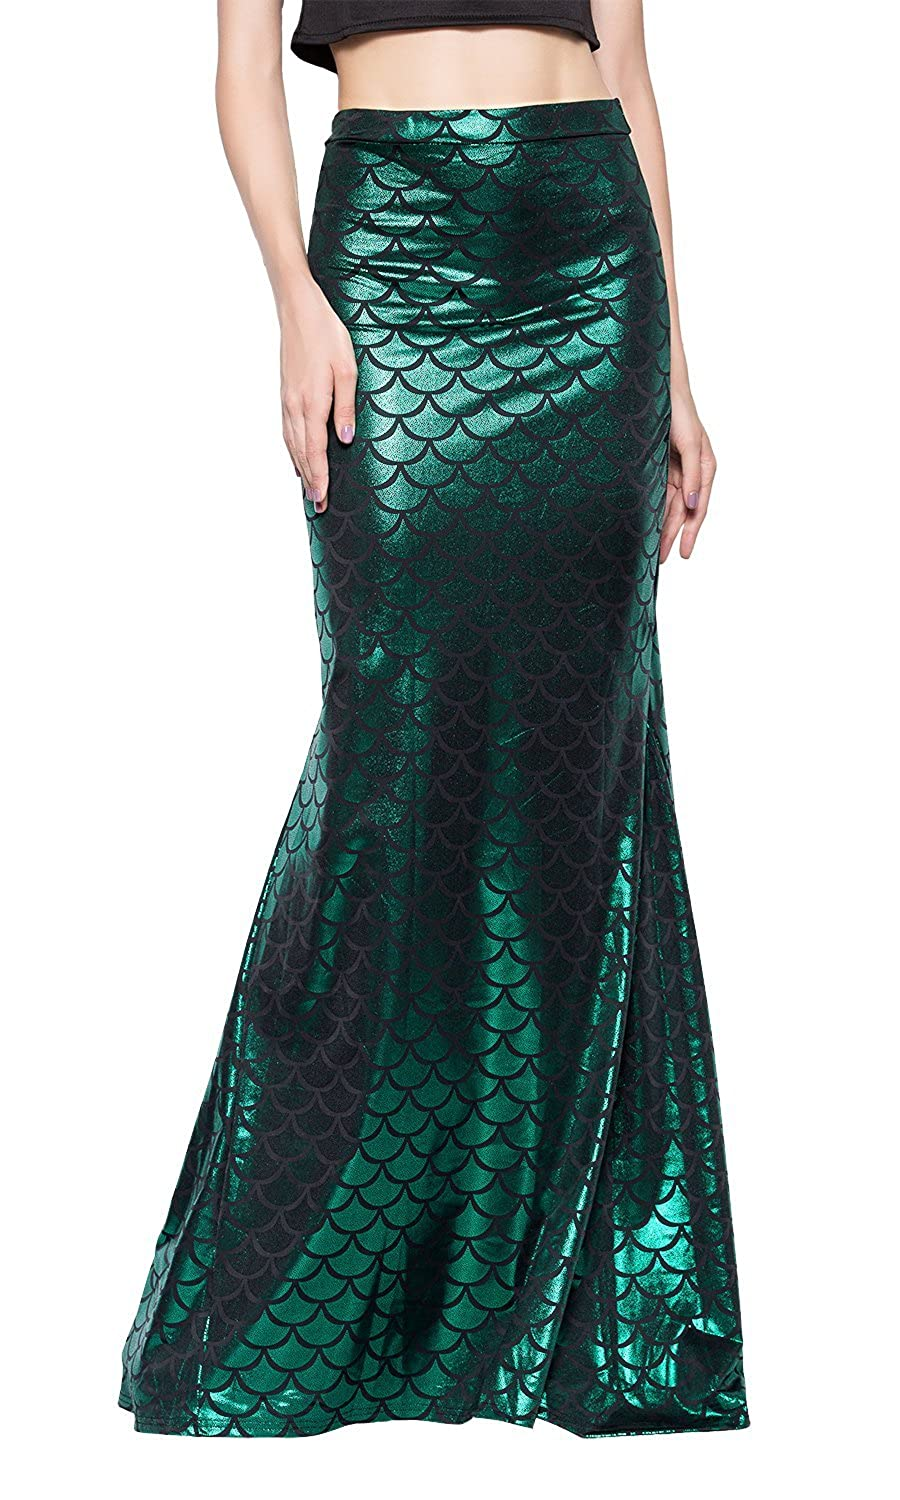 Ladies Long Iridescent Green Fish Scale Print Stretchy Flared Mermaid Skirt - DeluxeAdultCostumes.com